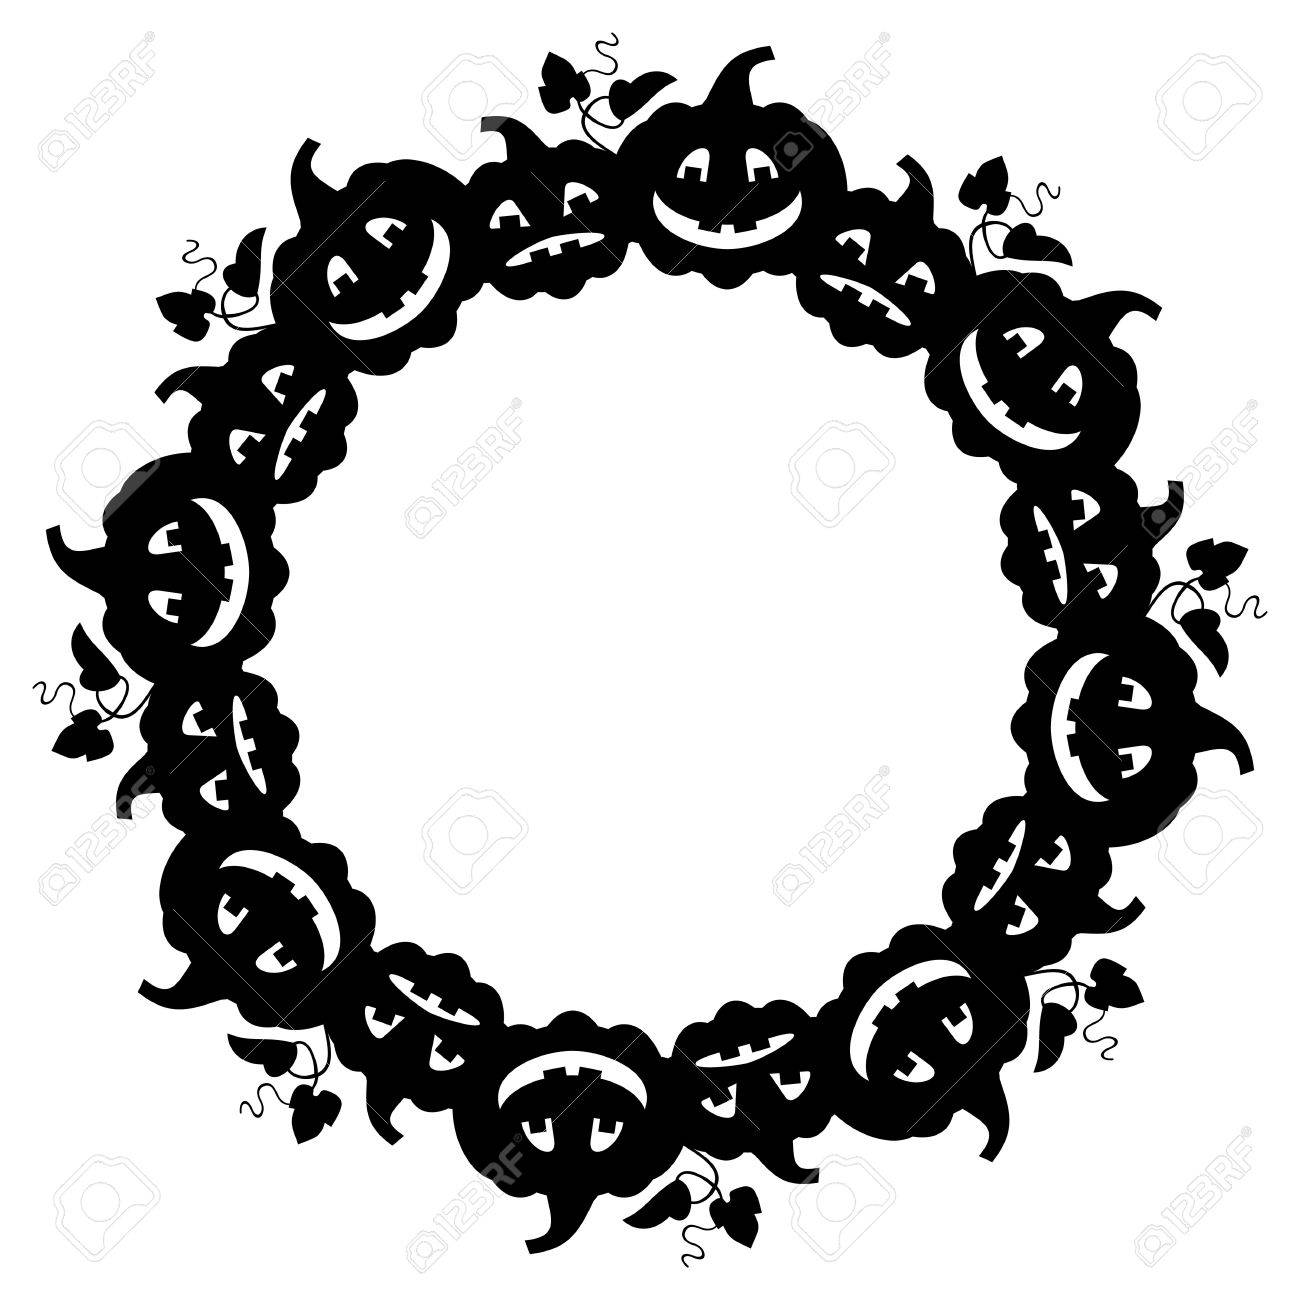 Halloween Vector Black And White.Black And White Round Frame With Halloween Pumpkin Silhouette